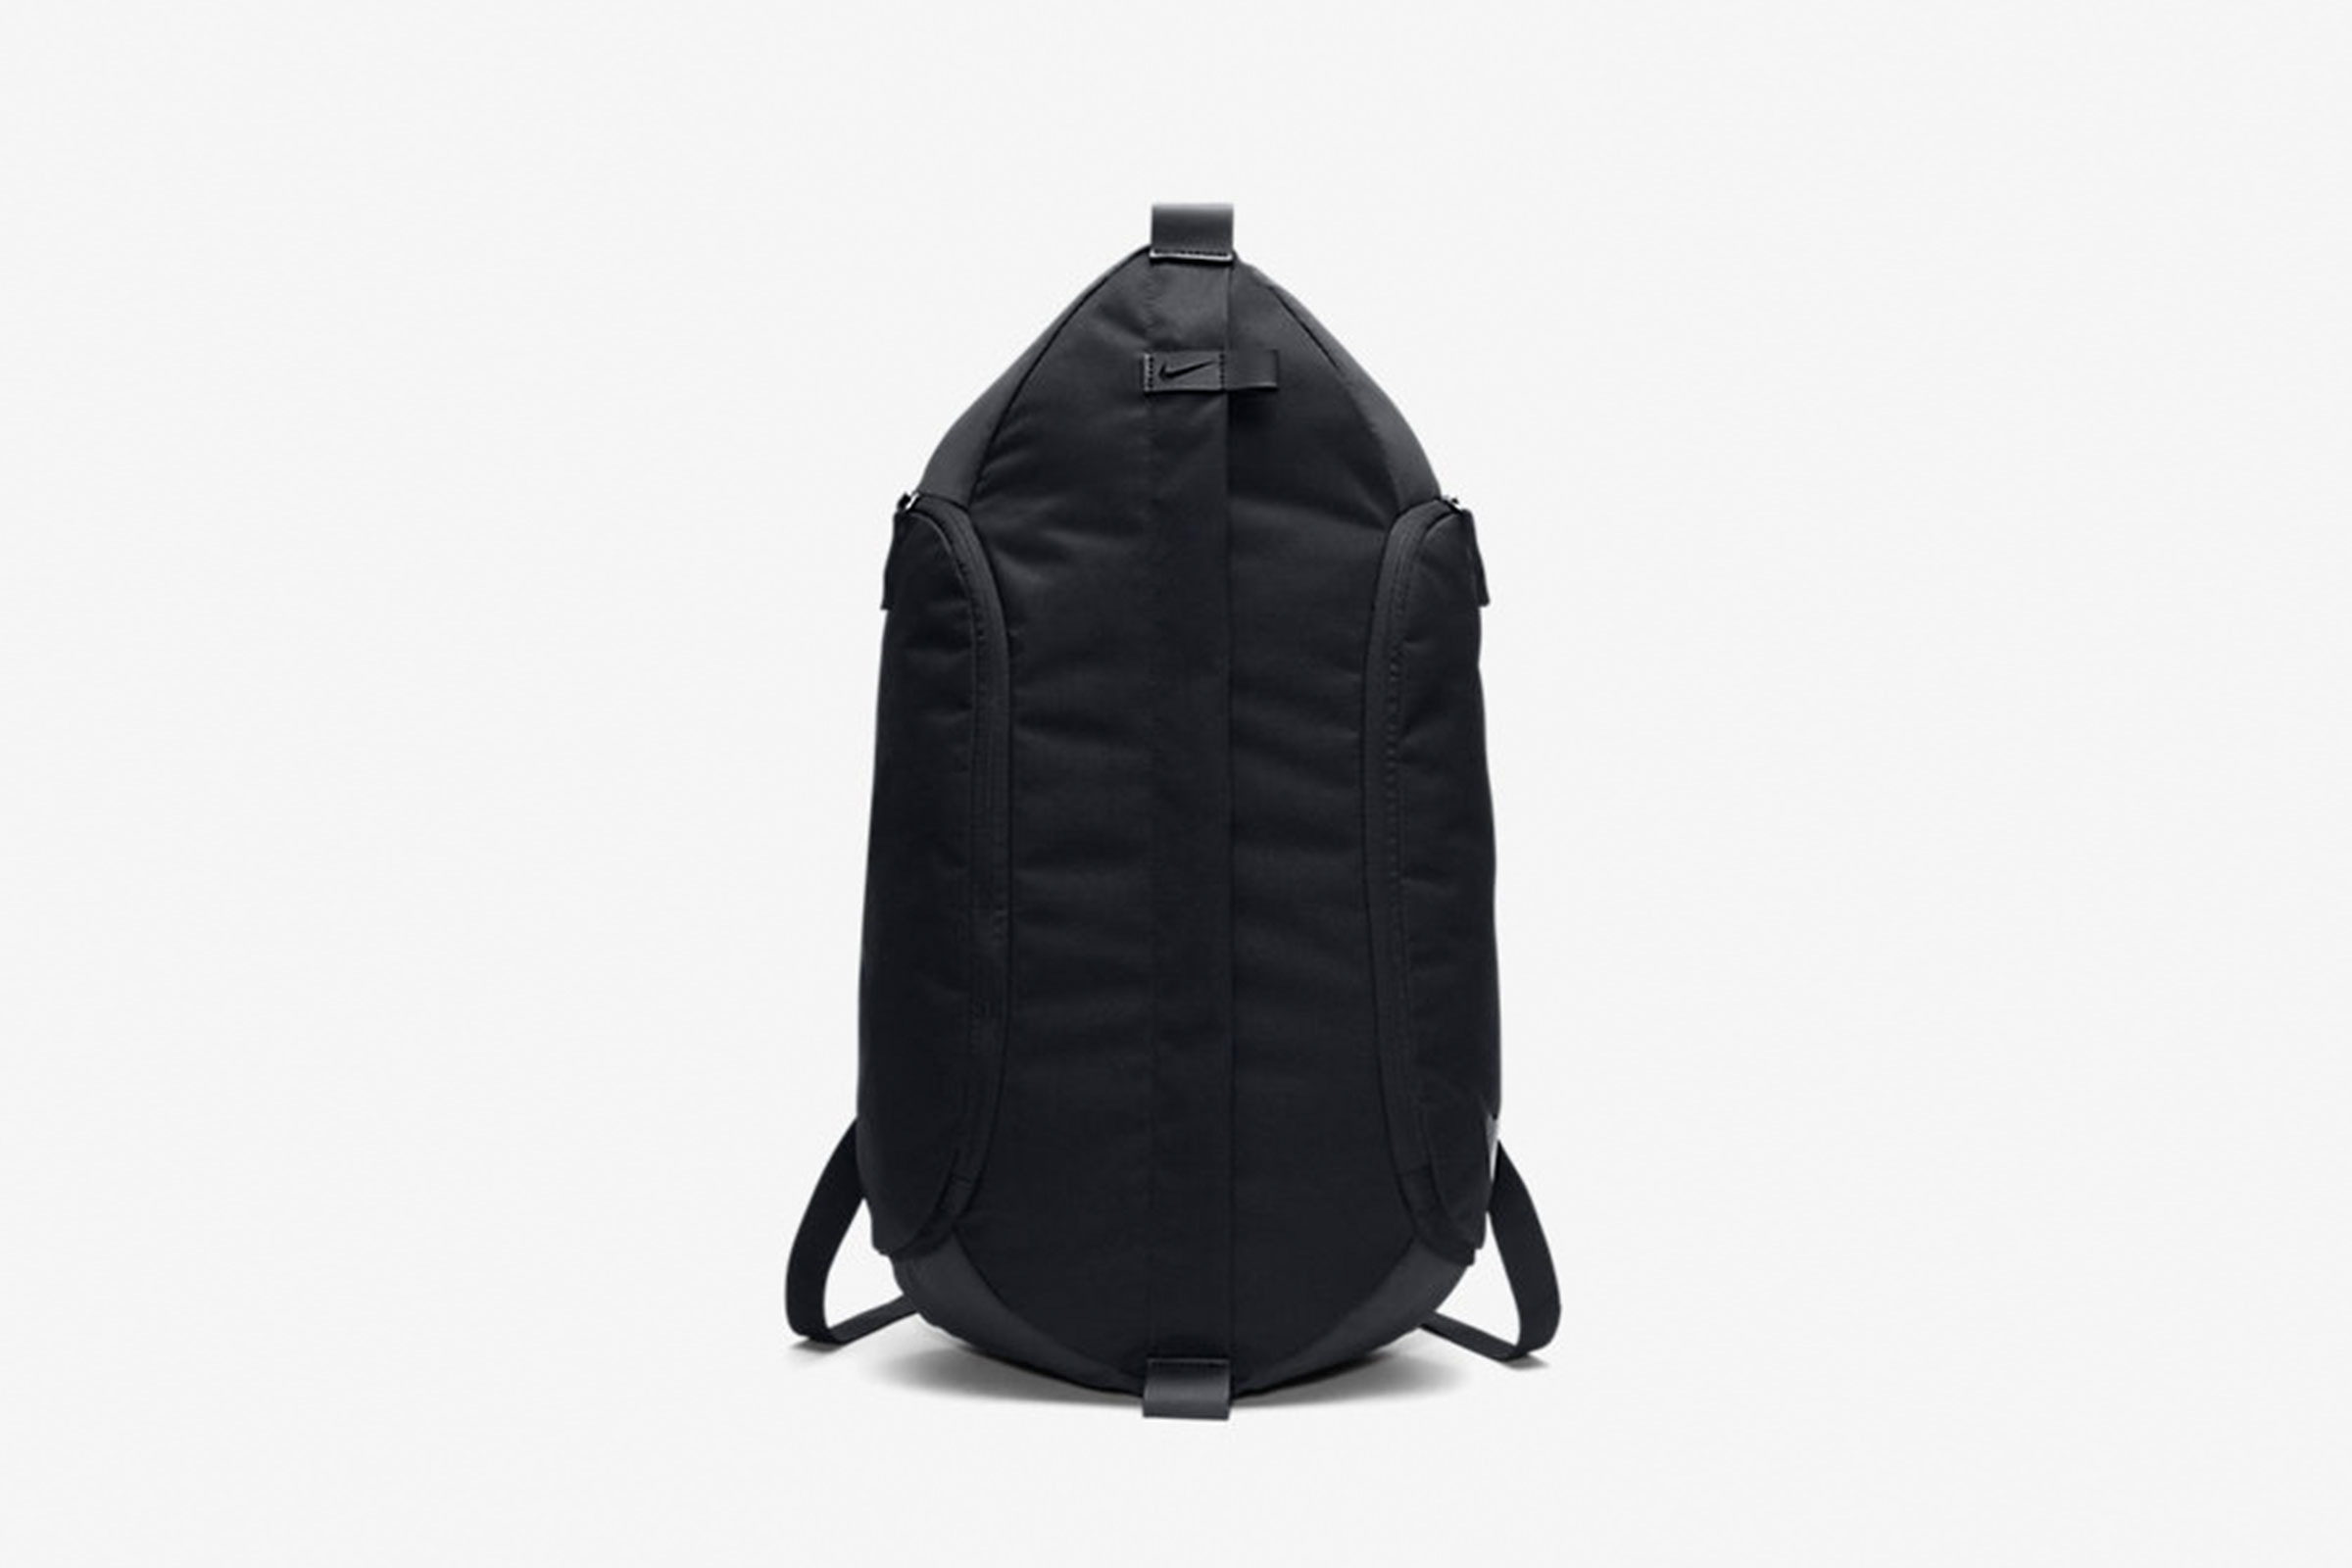 10 Quality Men's Backpacks For Daily Carry